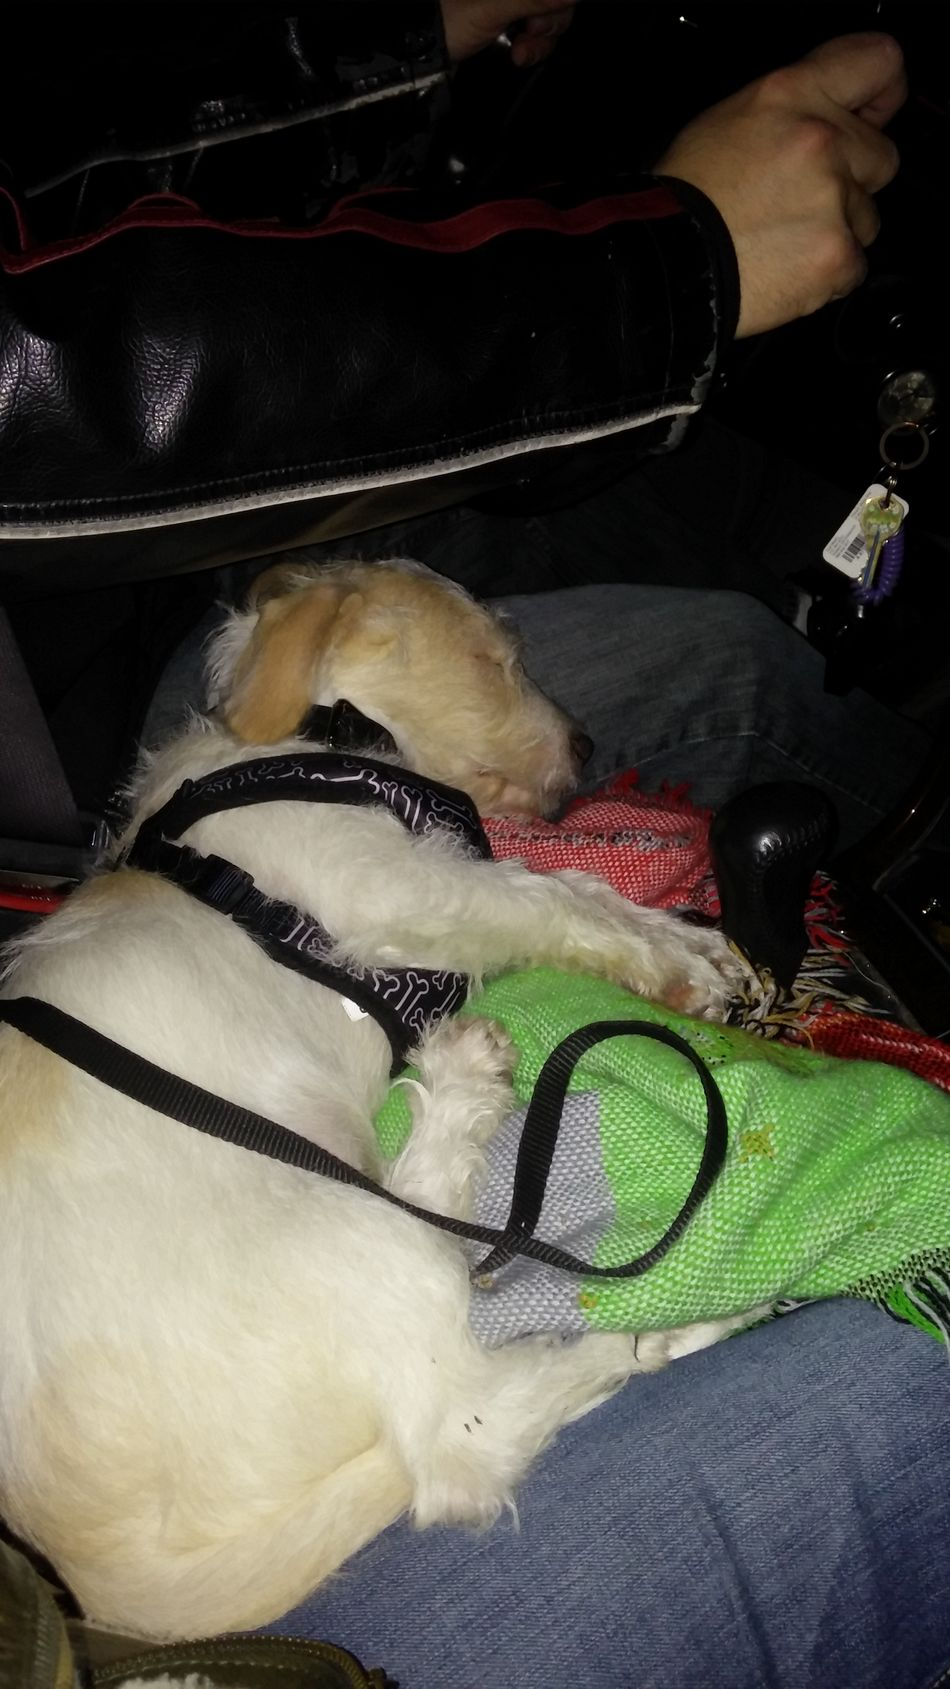 The trip to Petsmart for a new collar and harness was exhausting. Deafdogsrock Bummer